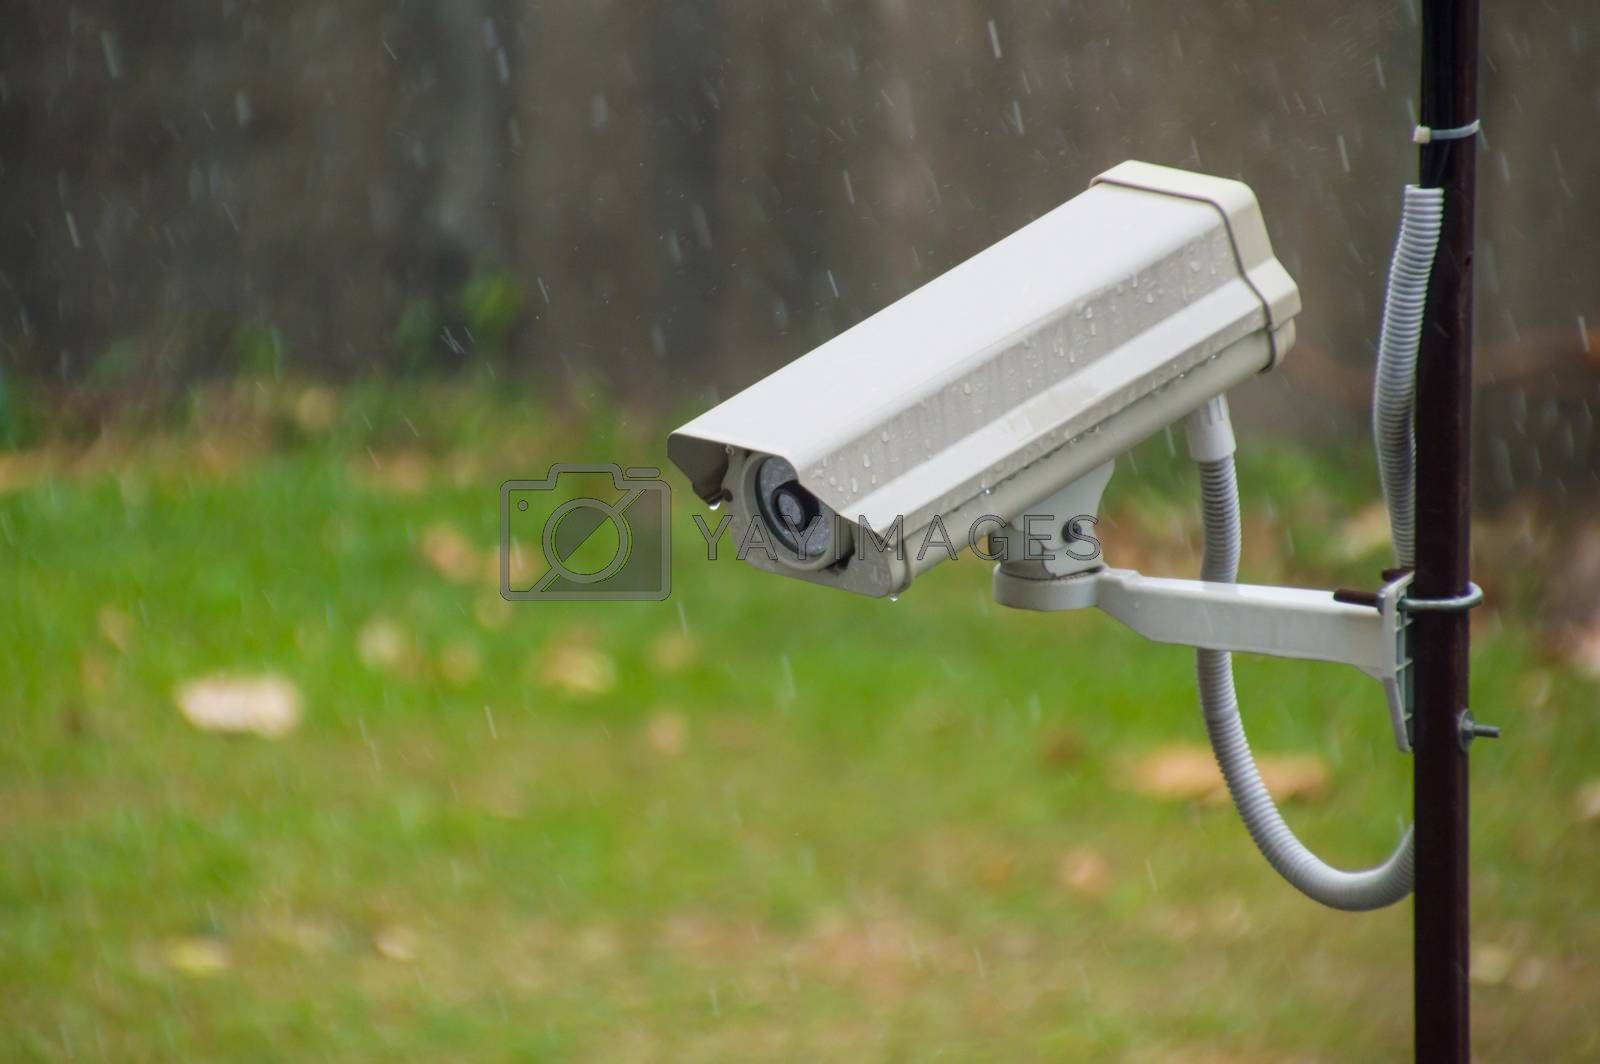 CCTV security camera in raining by Nu1983